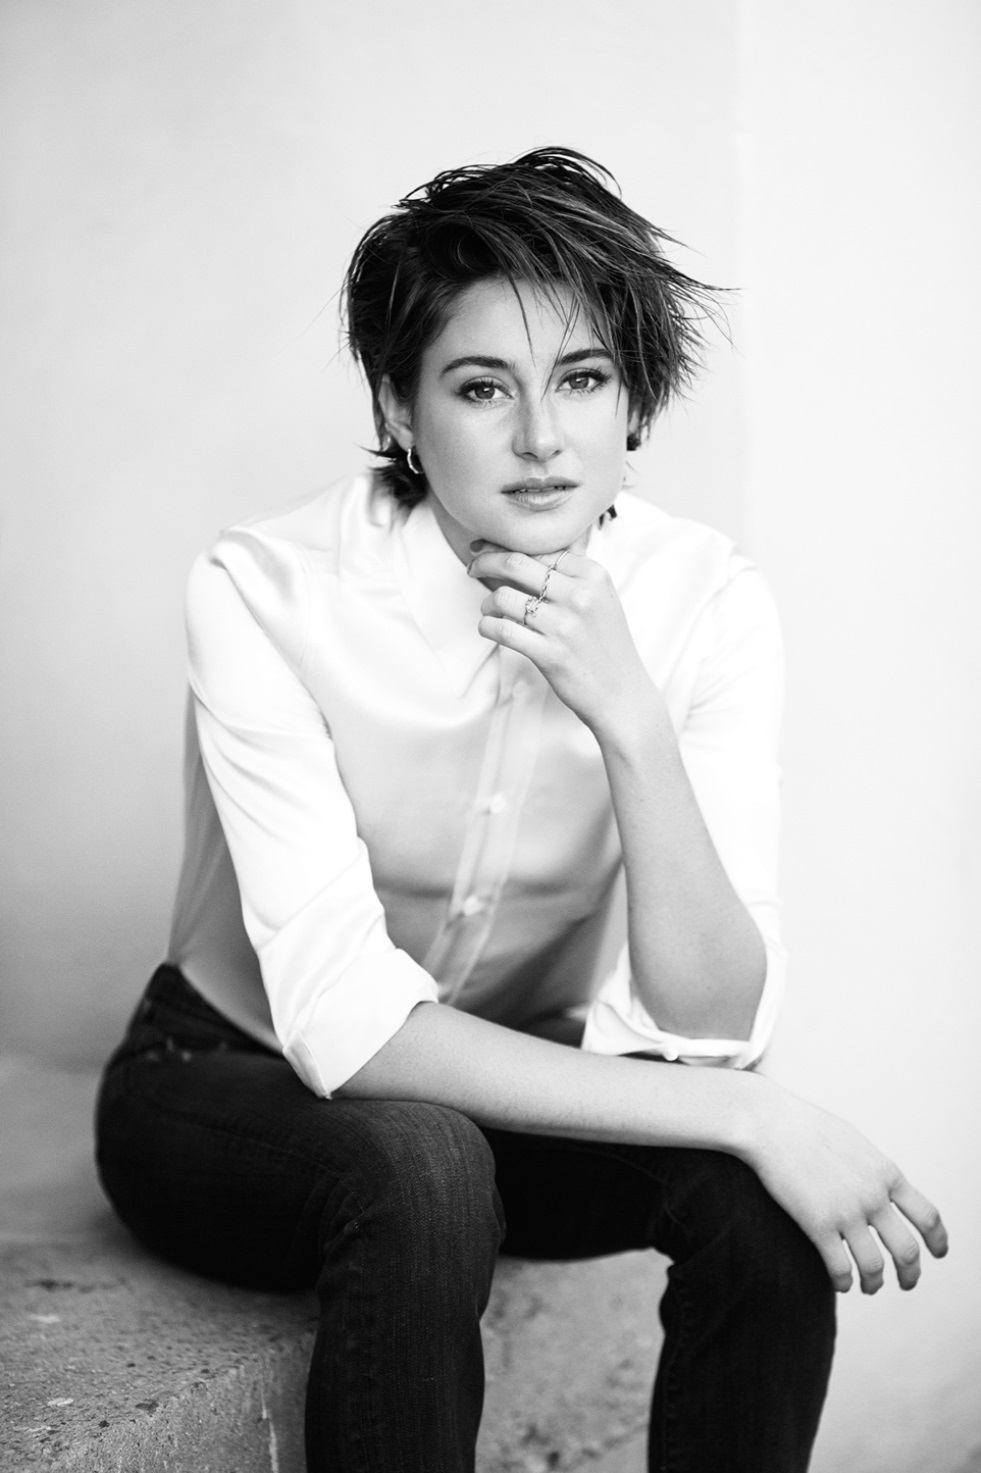 Shailene Woodley black and white - Shailene Woodley Net Worth, Movies, Family, Private Life, Pictures and Wallpapers